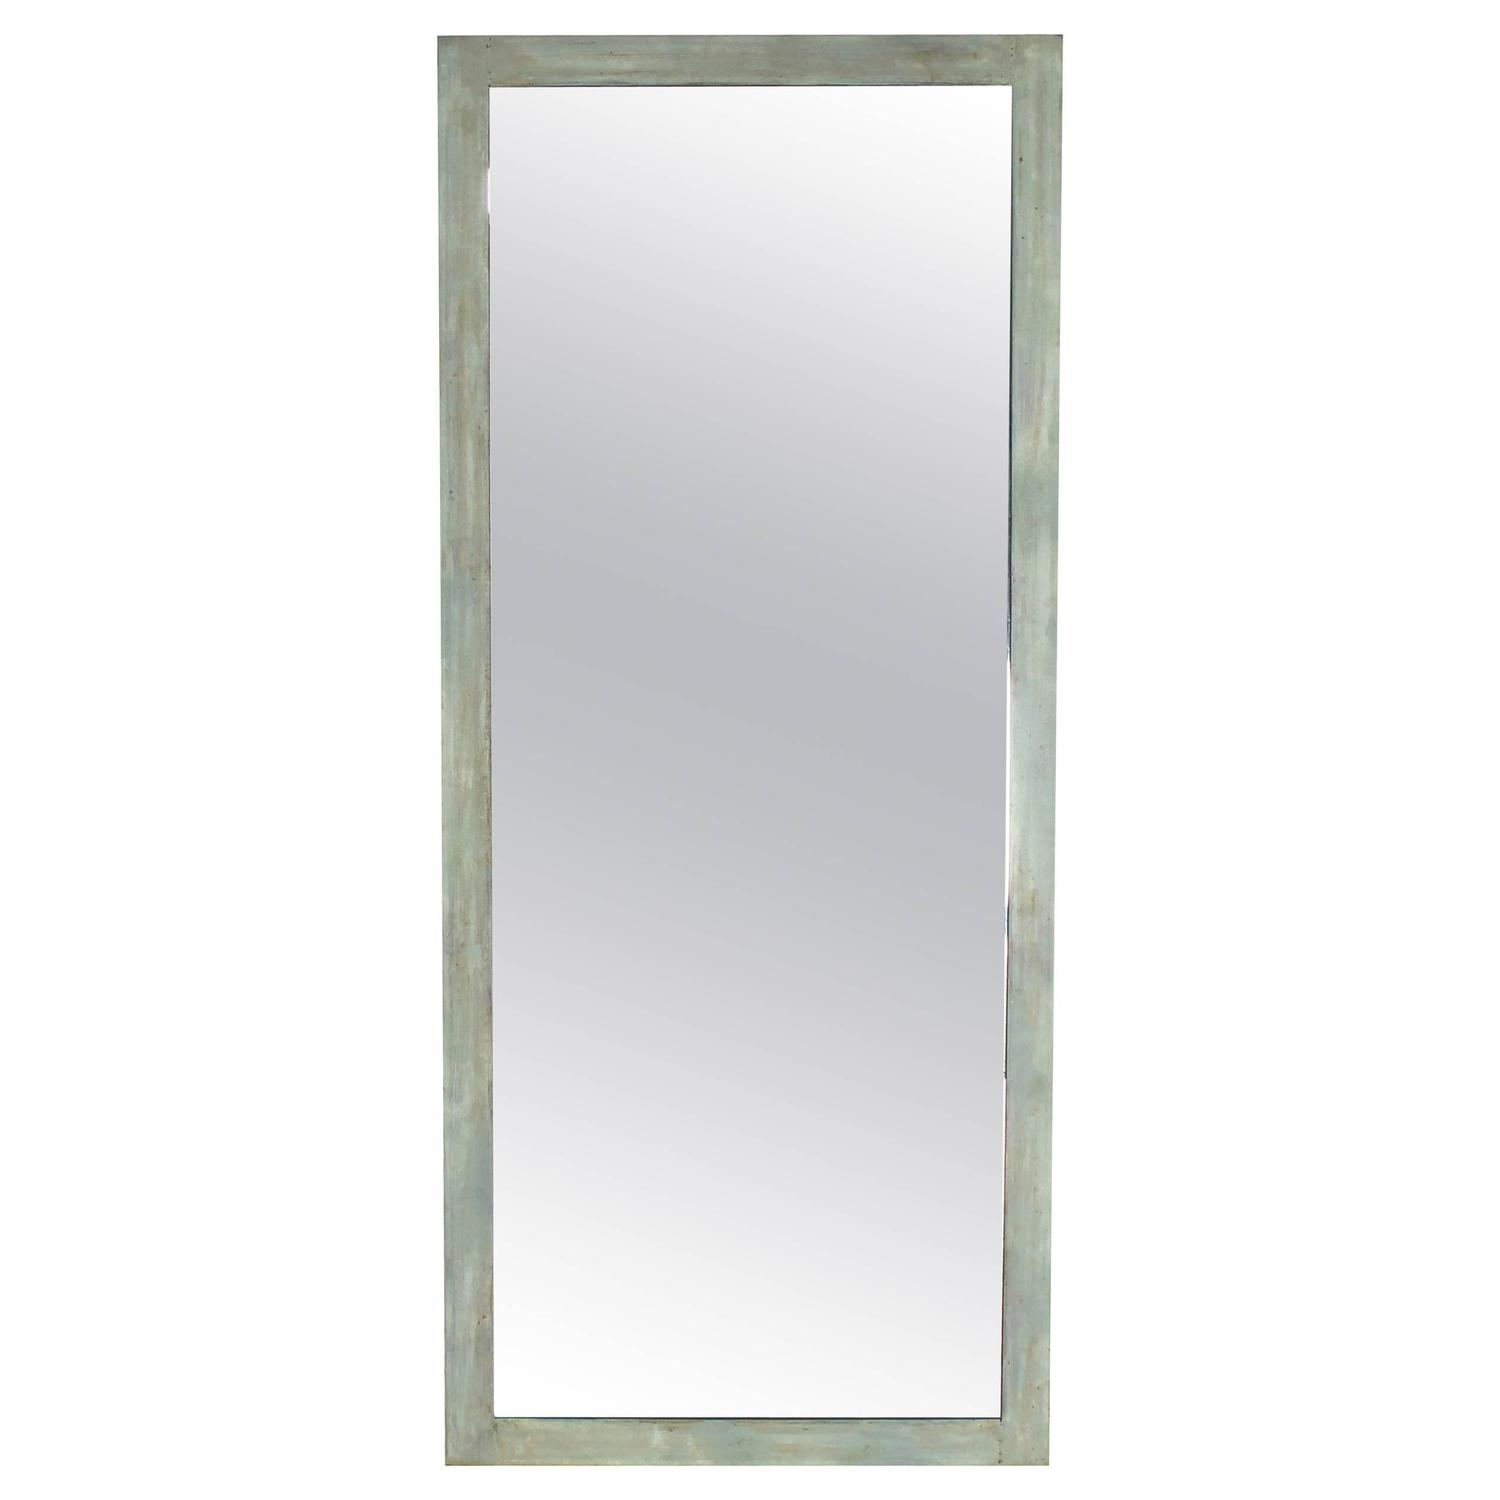 Large wall mirror for sale at 1stdibs for Big mirrors for sale